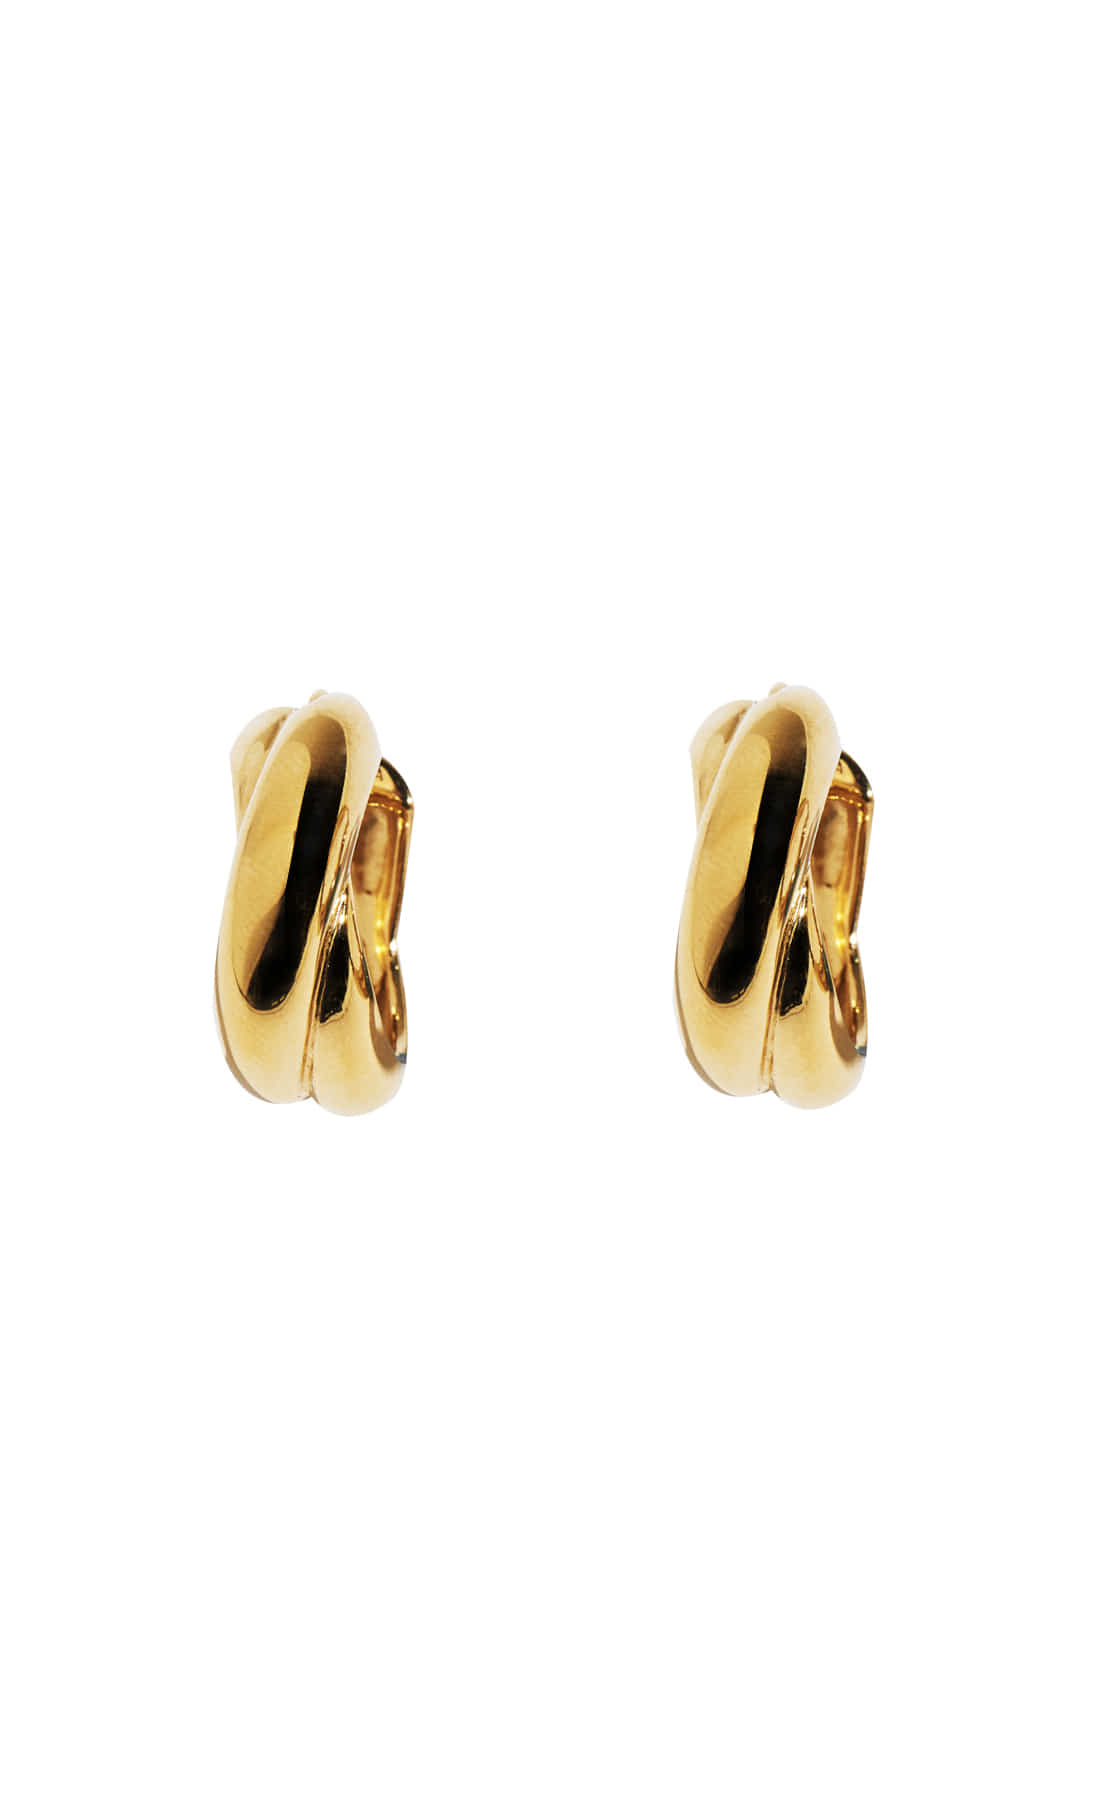 TWIST EARRING 24K